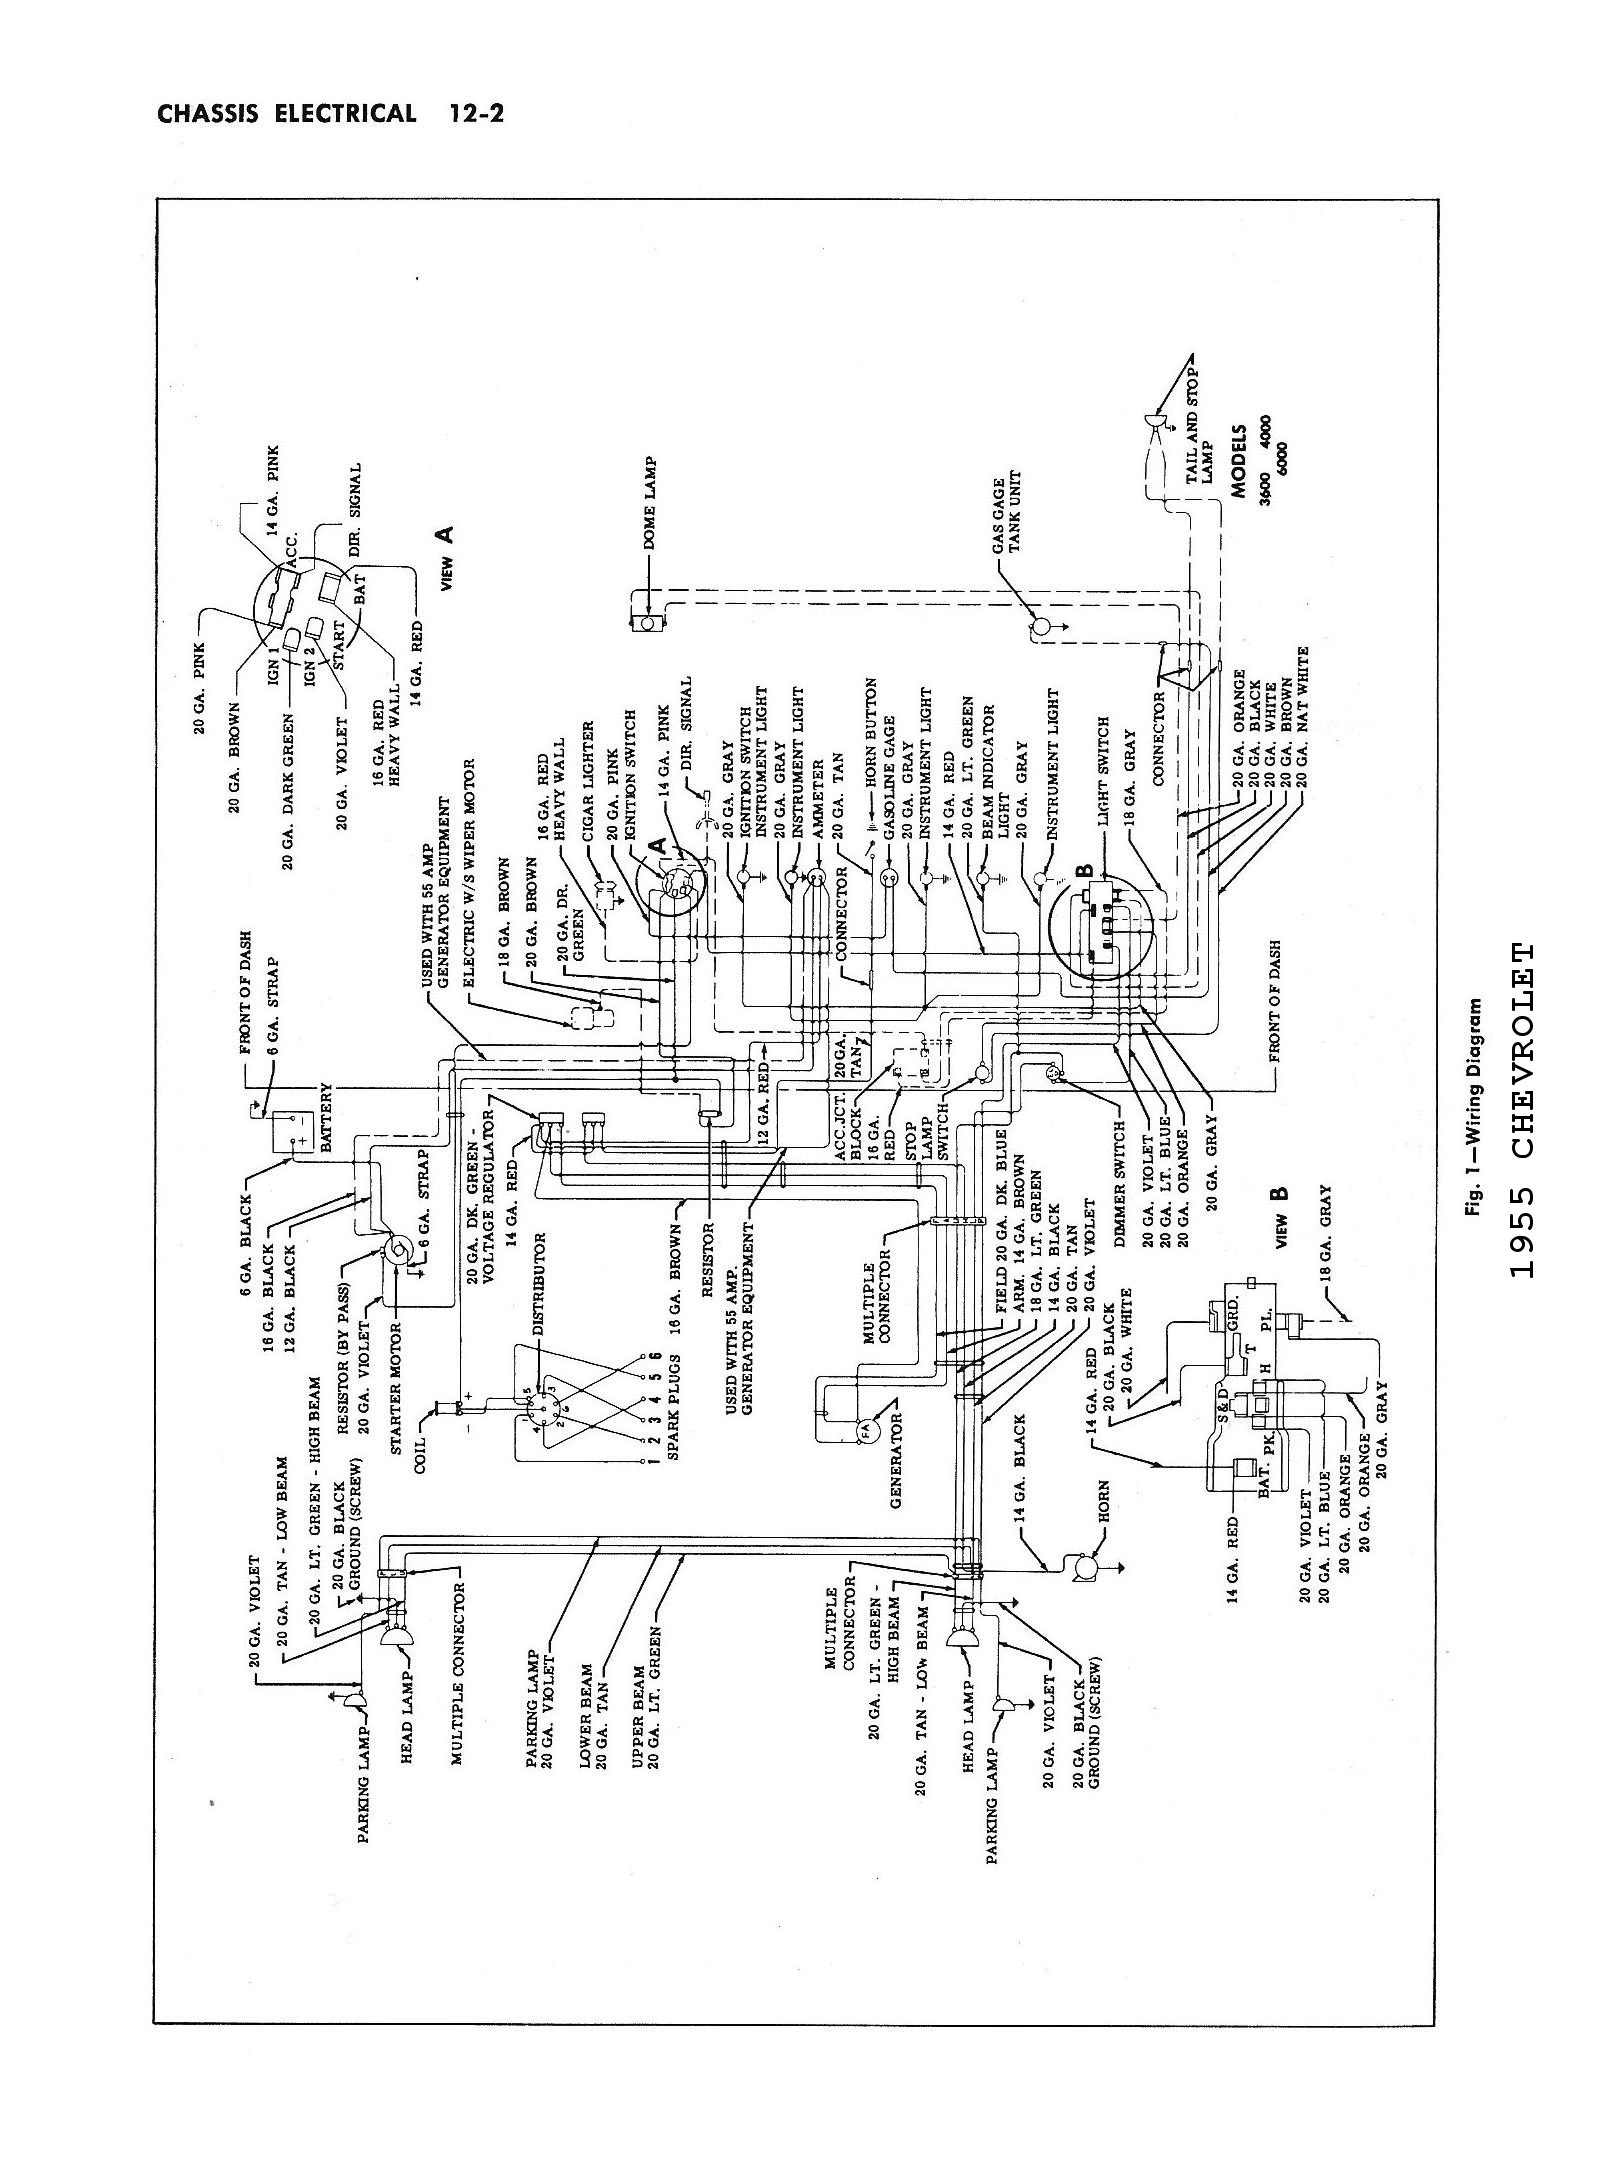 1958 Chevy Truck Wiring Harness Diagram Schematics For 1995 58 Just Schematic 1955 Ford